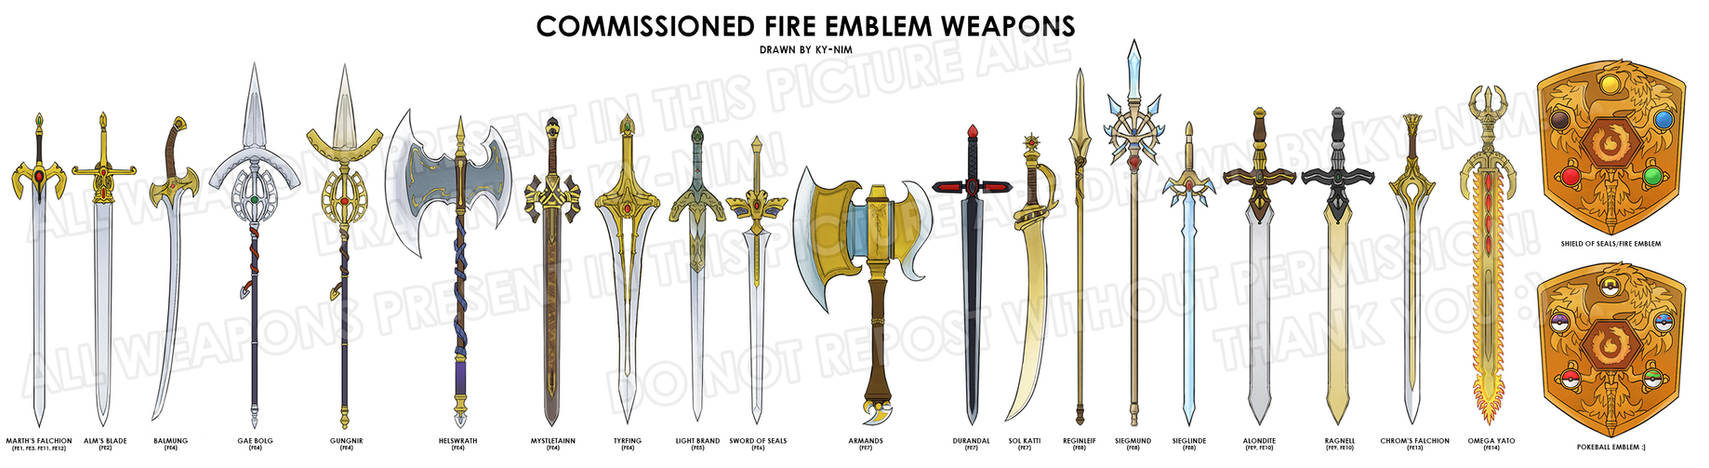 Fire Emblem The Weapons Of Fe Compilation By Ky Nim On Deviantart